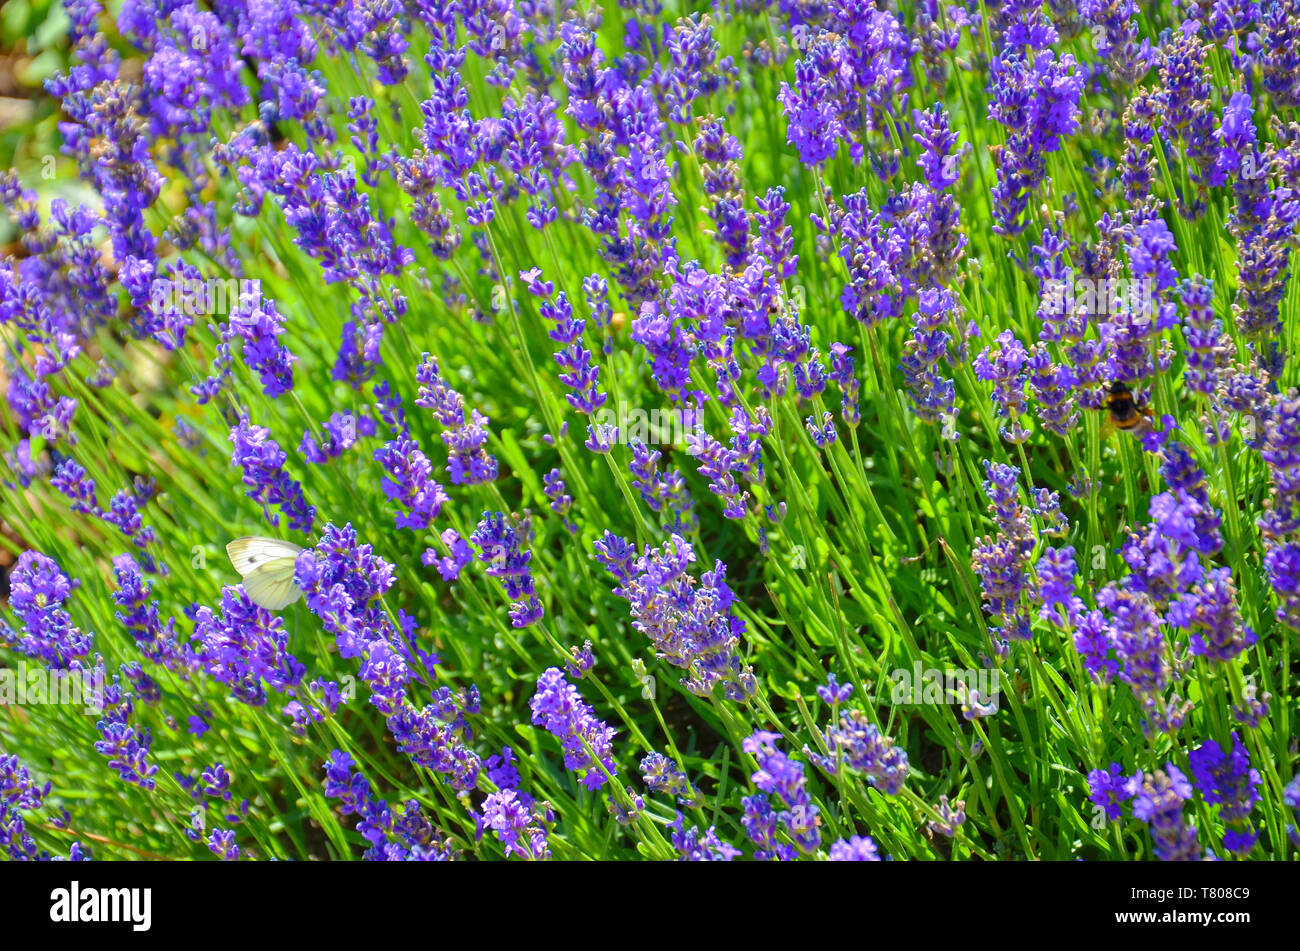 Beautiful blooming mealy sage, Salvia farinacea, taken close up. The amazing purple healing herb attracts butterflies and bumblebees. - Stock Image